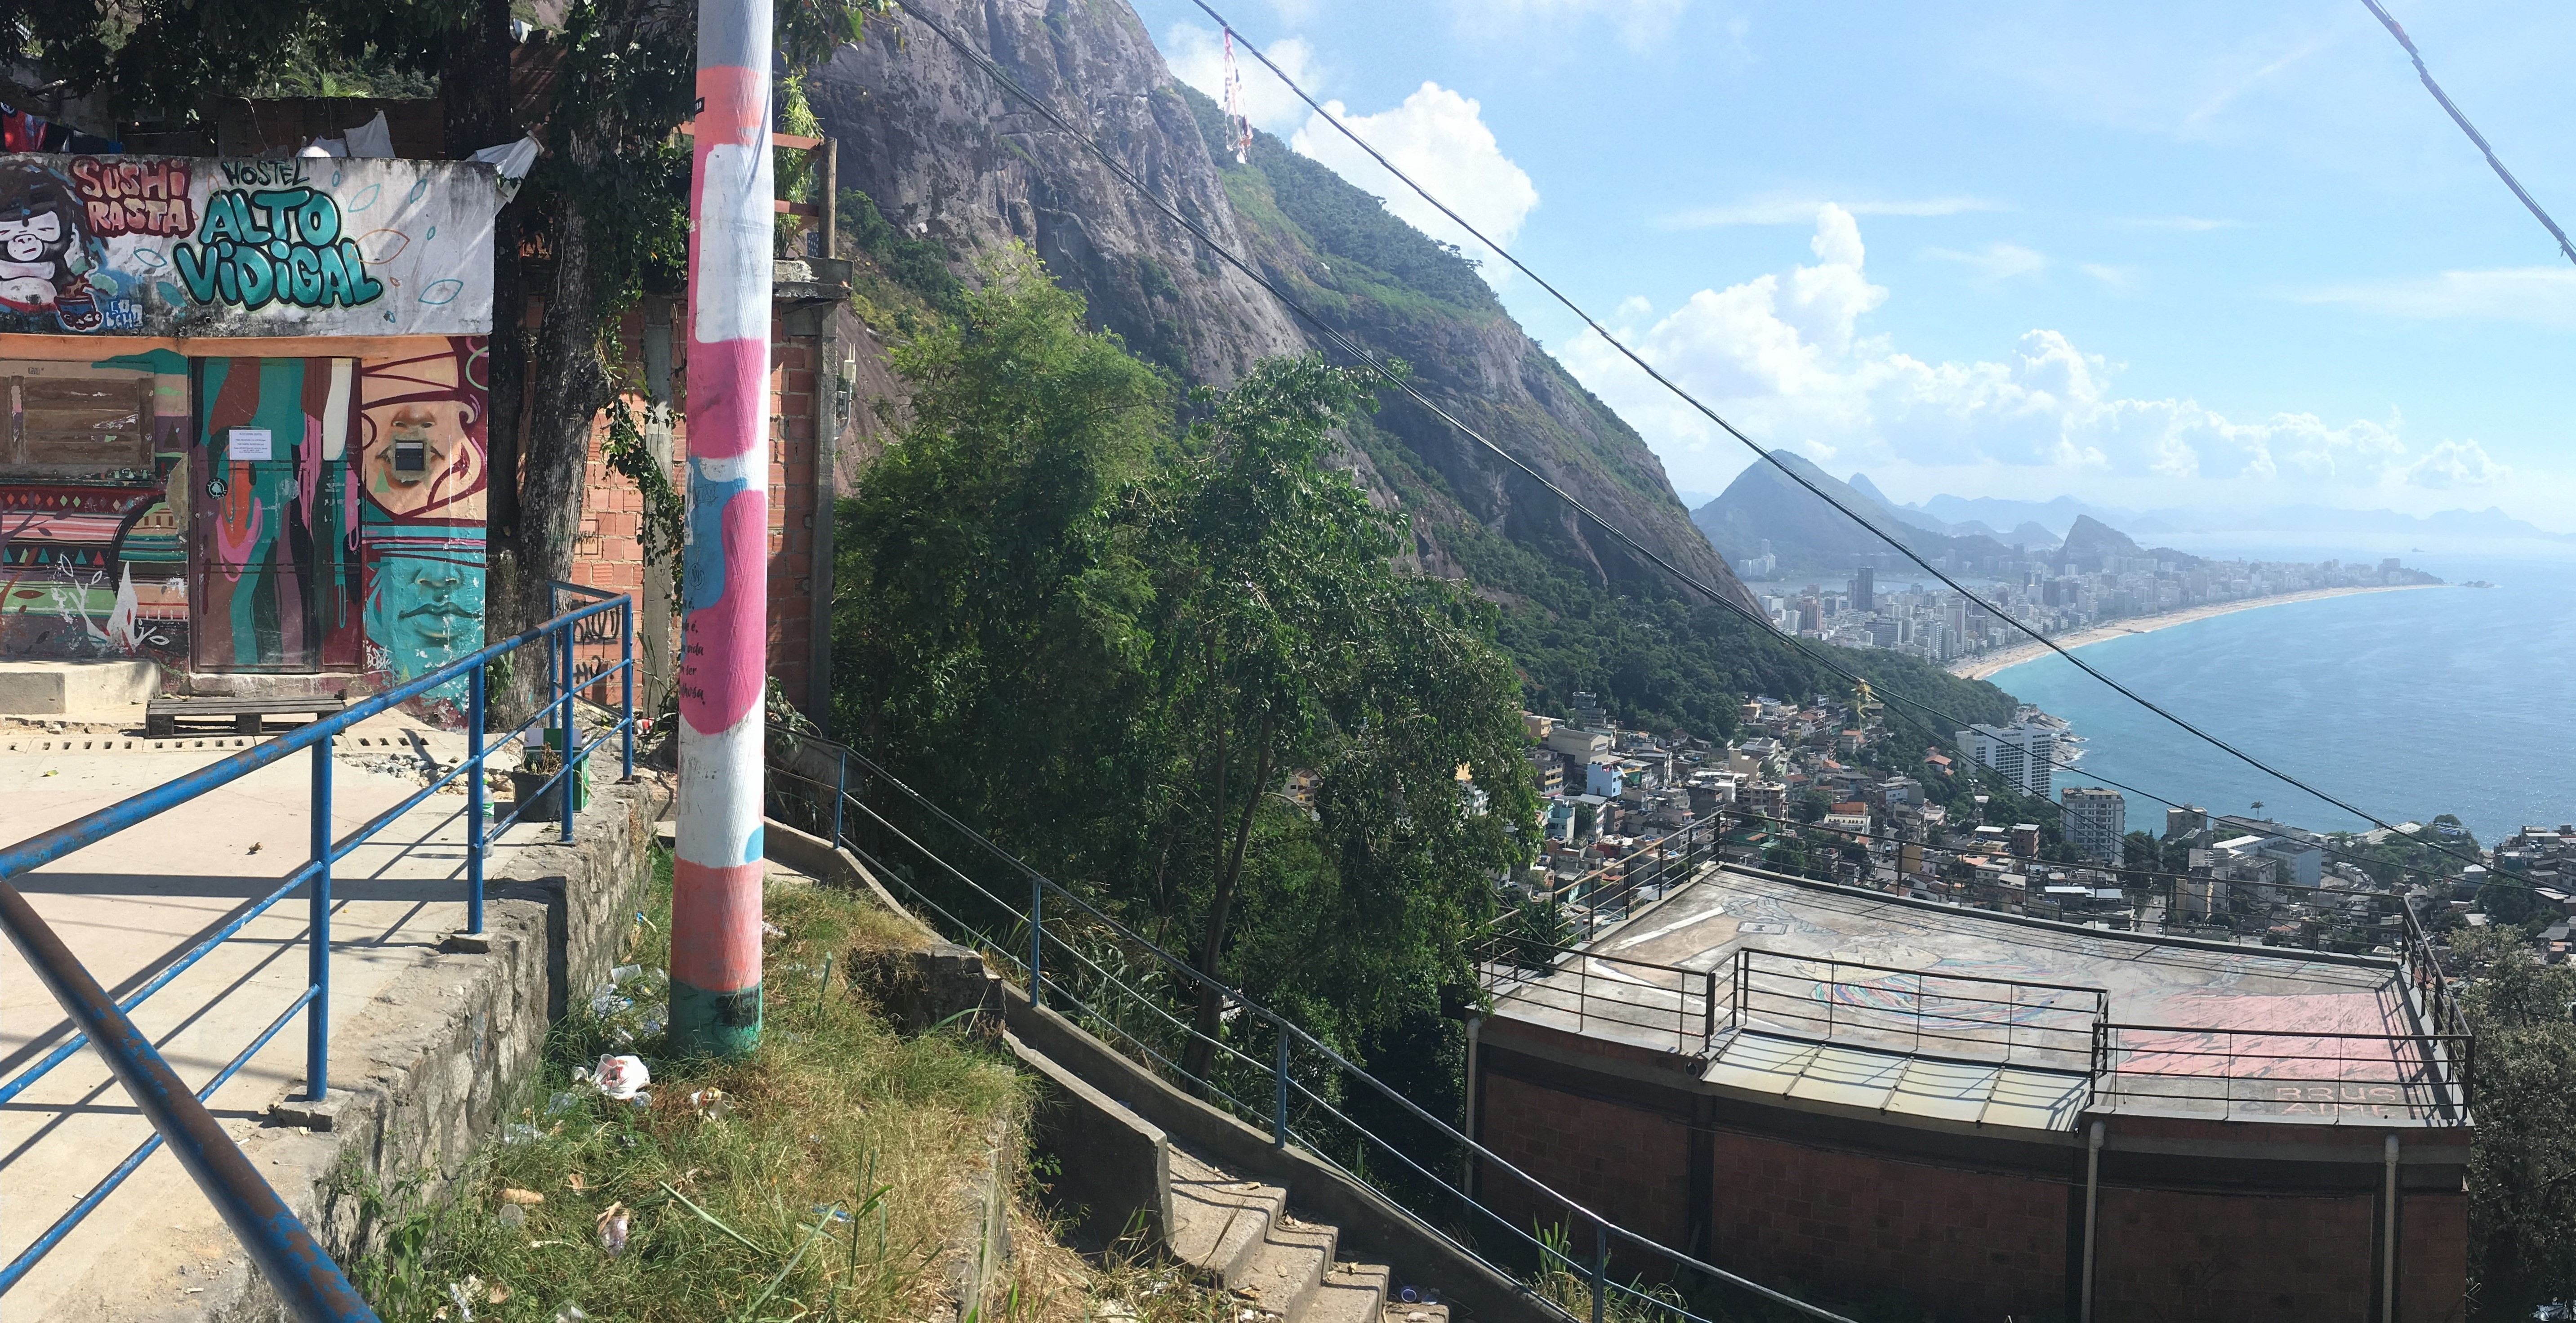 View from the top of Vidigal favela - Ipanema beach on the background